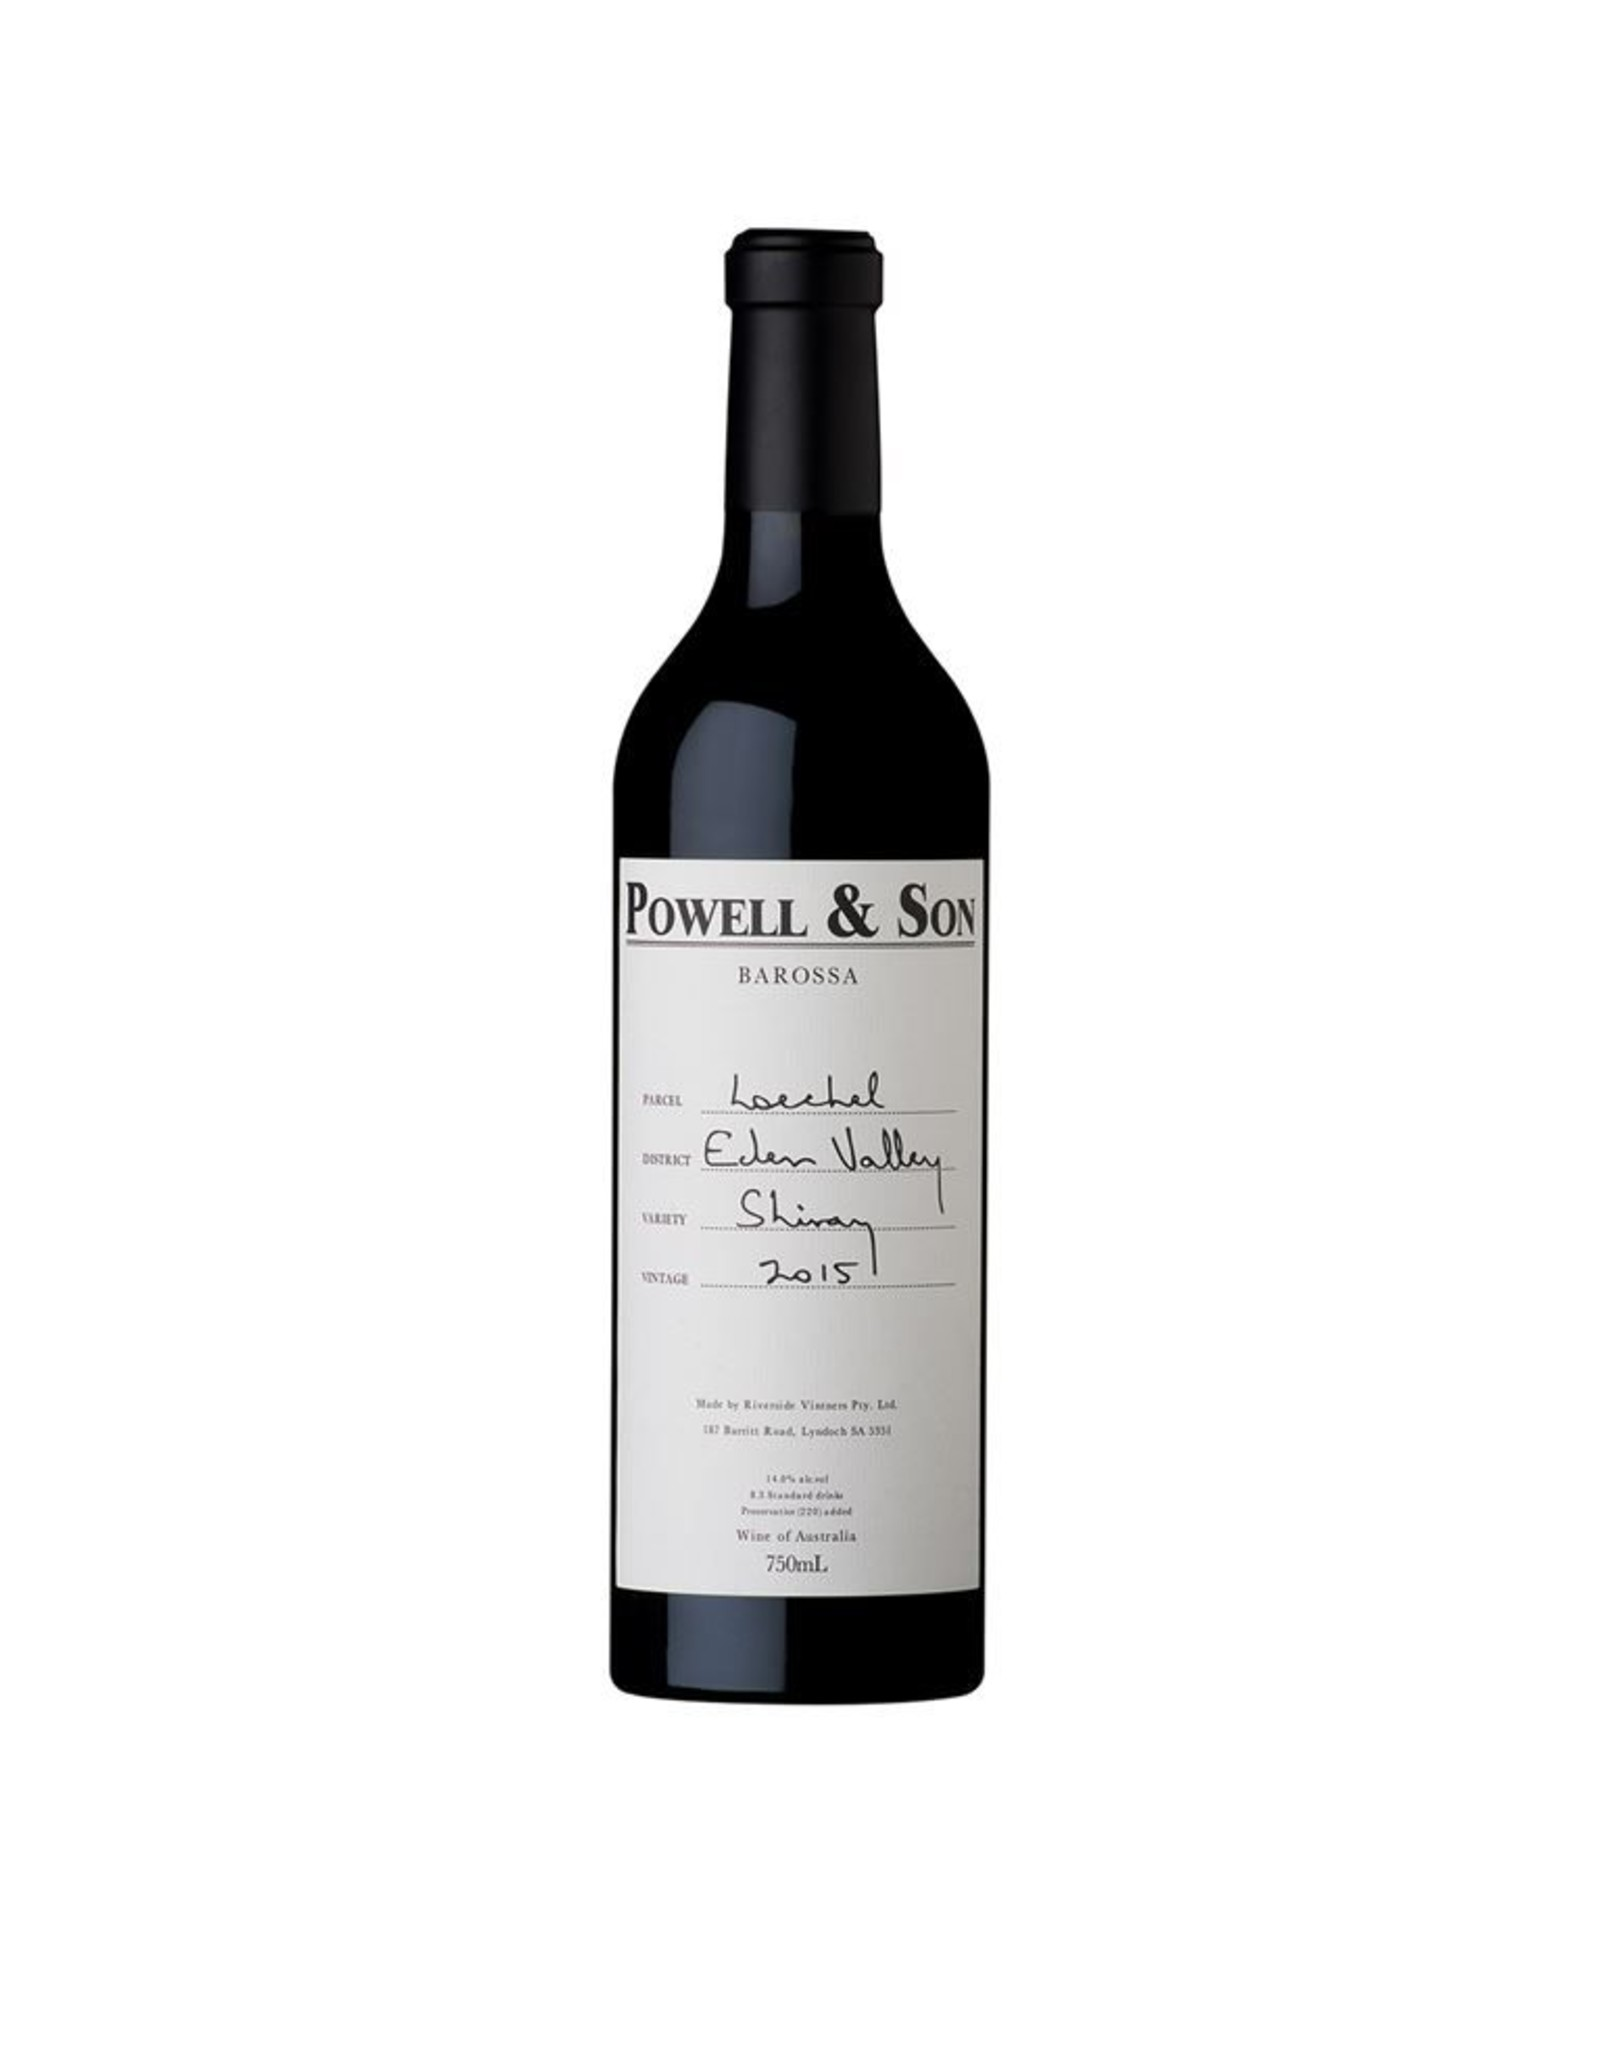 Red Wine 2015, Powell & Son Loechel, Shiraz, Eden Valley, Barossa, Australia, 14.5% Alc, CT97, RP97